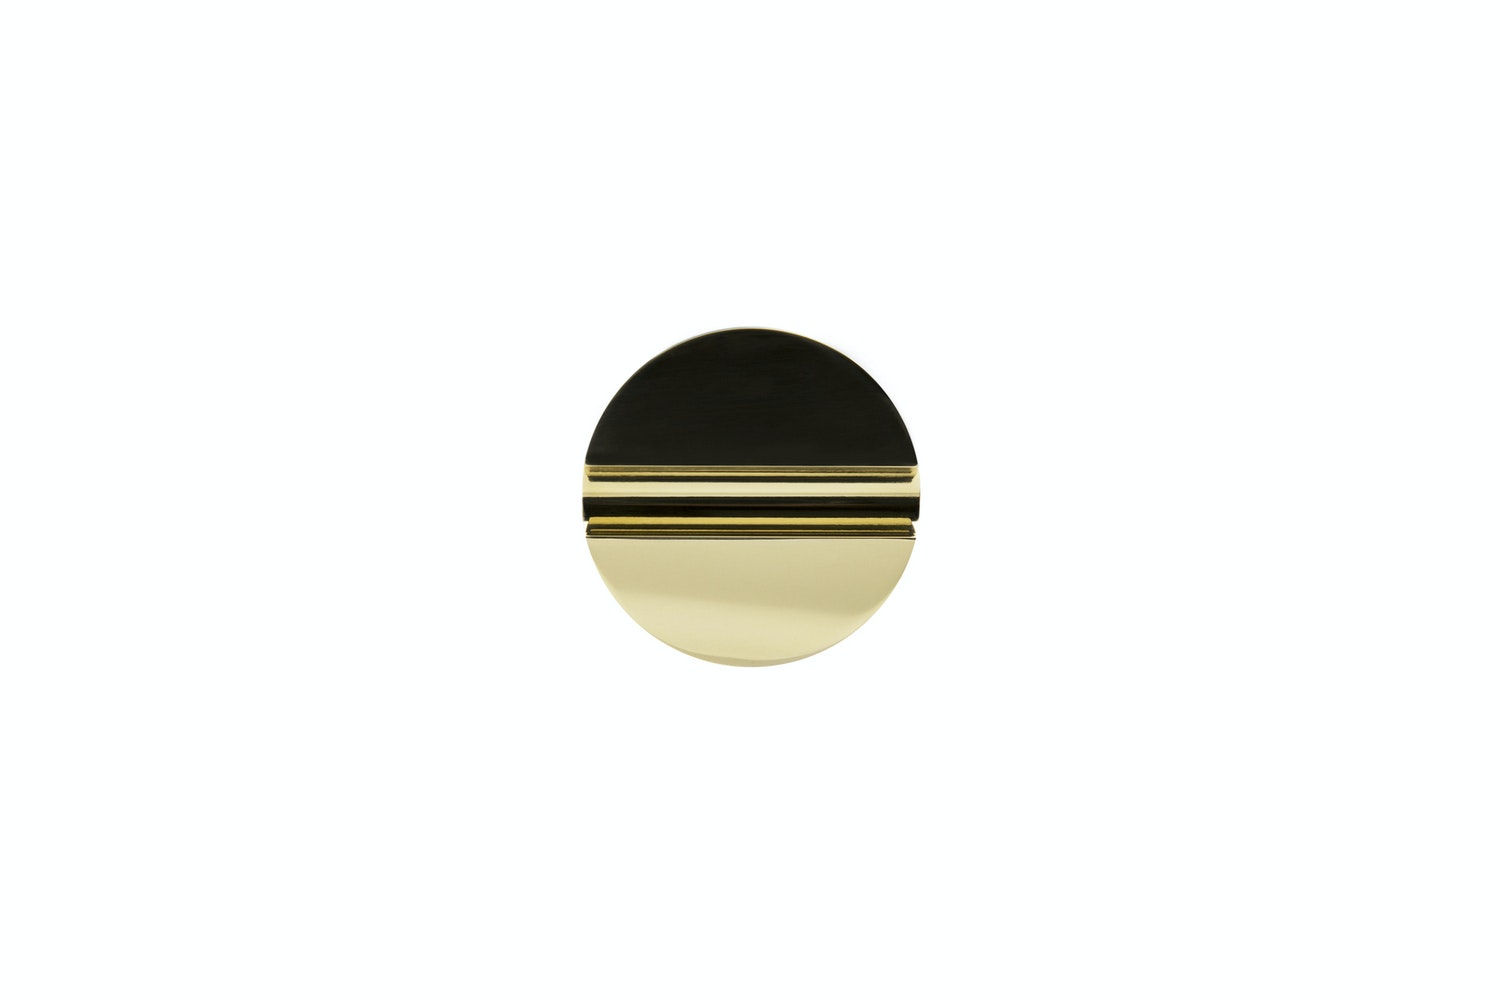 Pen Rest - Polished Brass by Minimalux